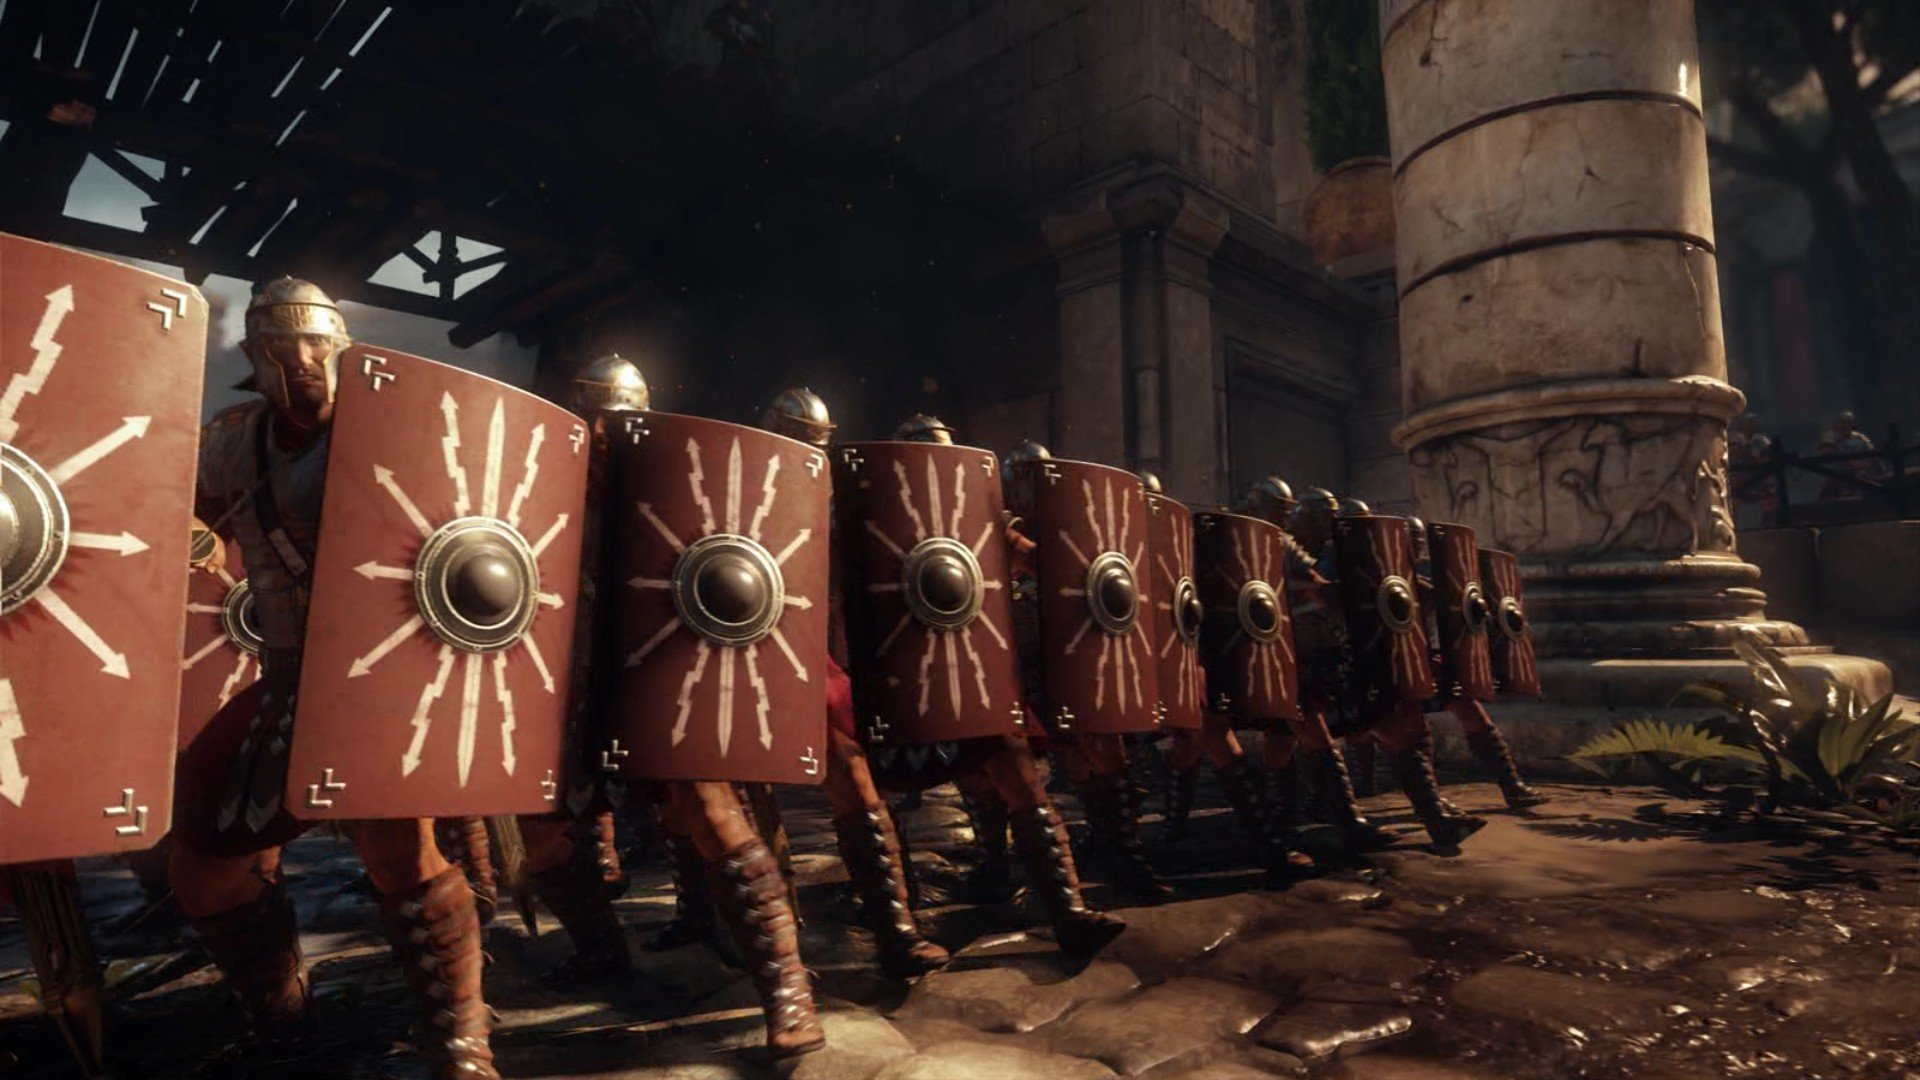 the rise of the ancient rome empire The rise of the roman empire, from the origins of ancient rome to the birth of the republic, the expansion of roman power in italy, the punic wars with carthage.